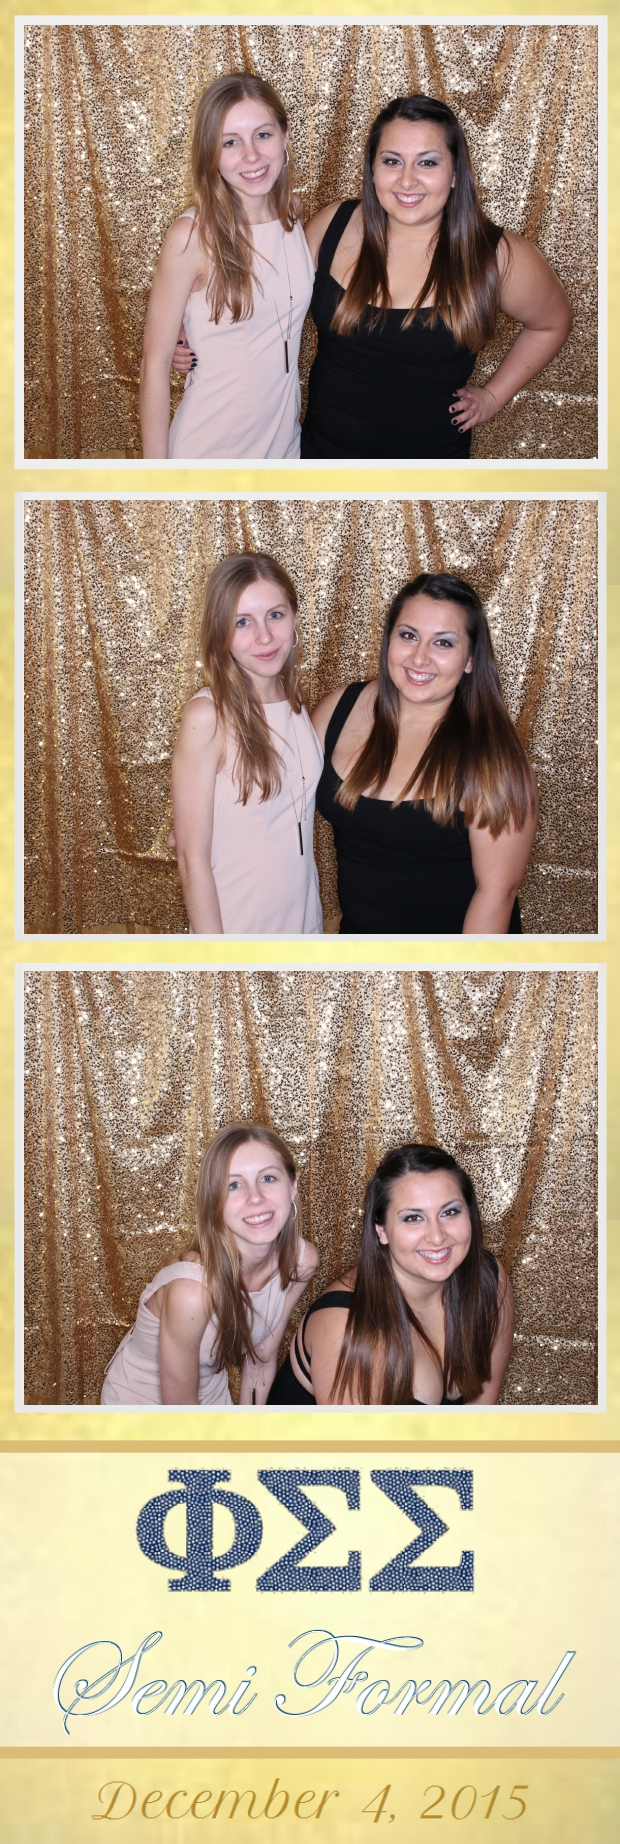 Guest House Events Photo Booth Phi Sigma Sigma Semi Formal (11).jpg